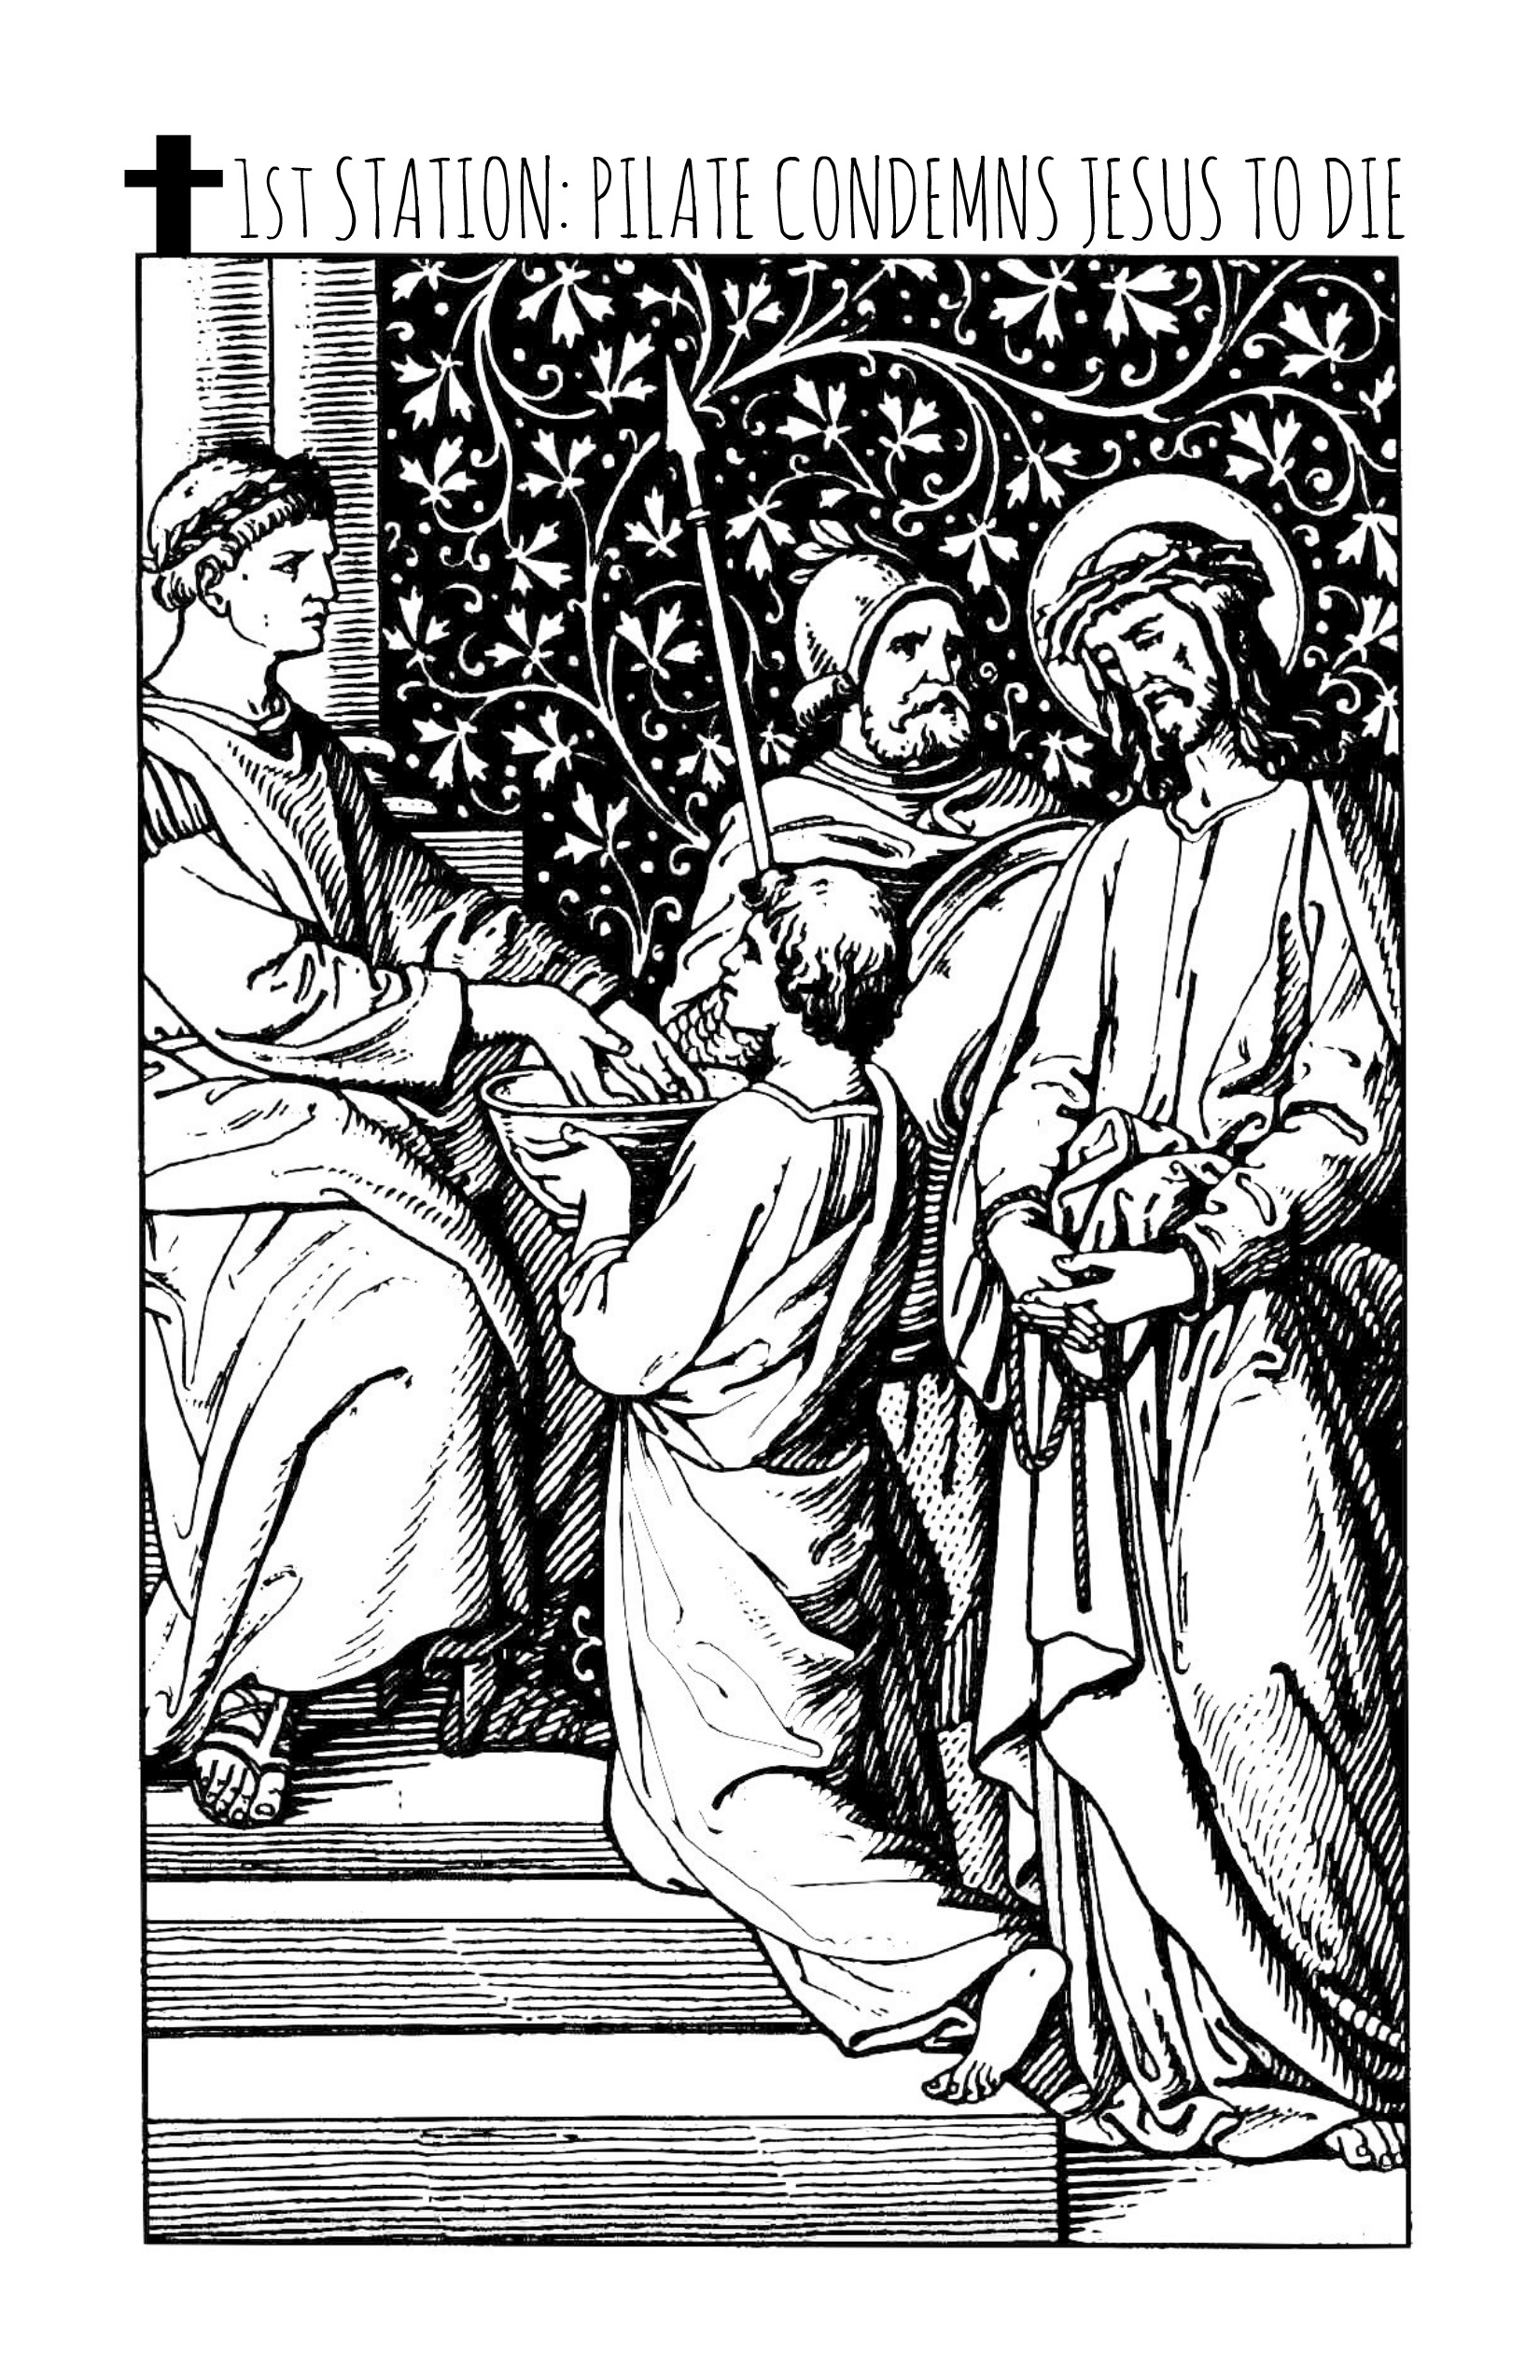 stations of the cross printable coloring book coloring pages for adults and kids digital download